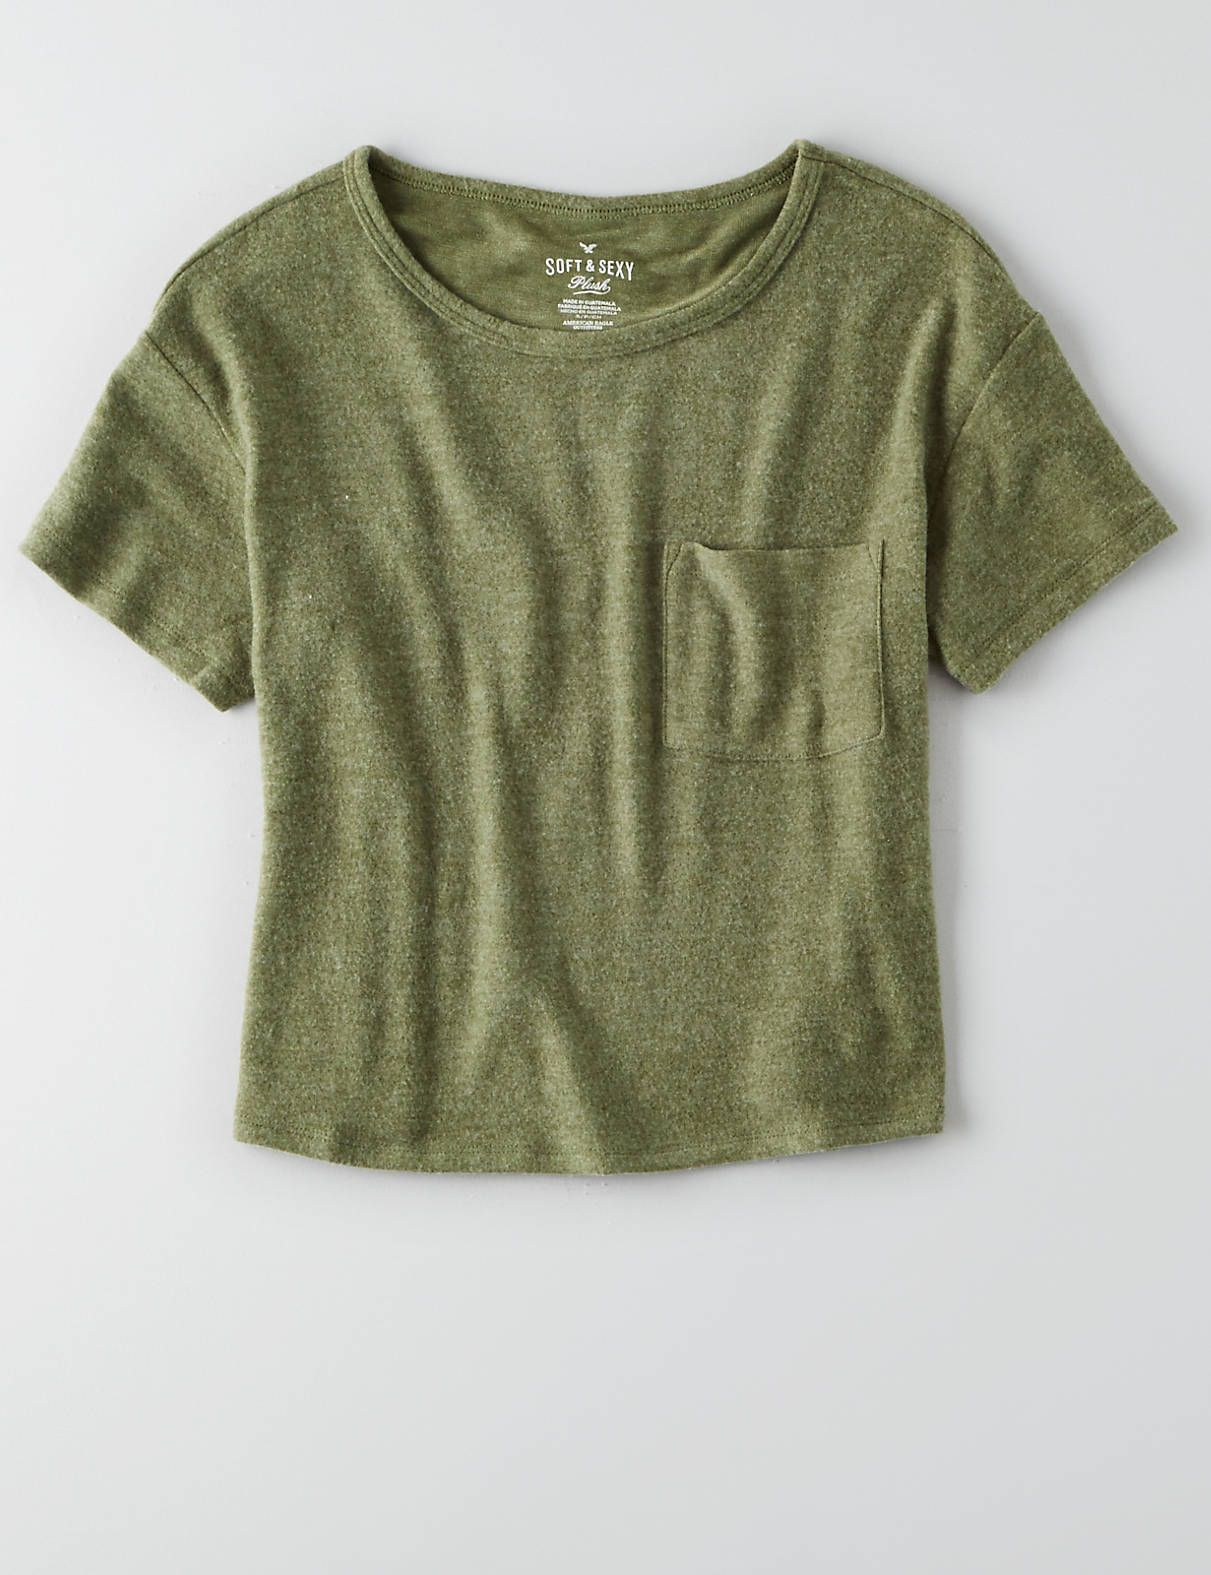 82761cfc50258 AEO Soft   Sexy Plush Pocket T-Shirt